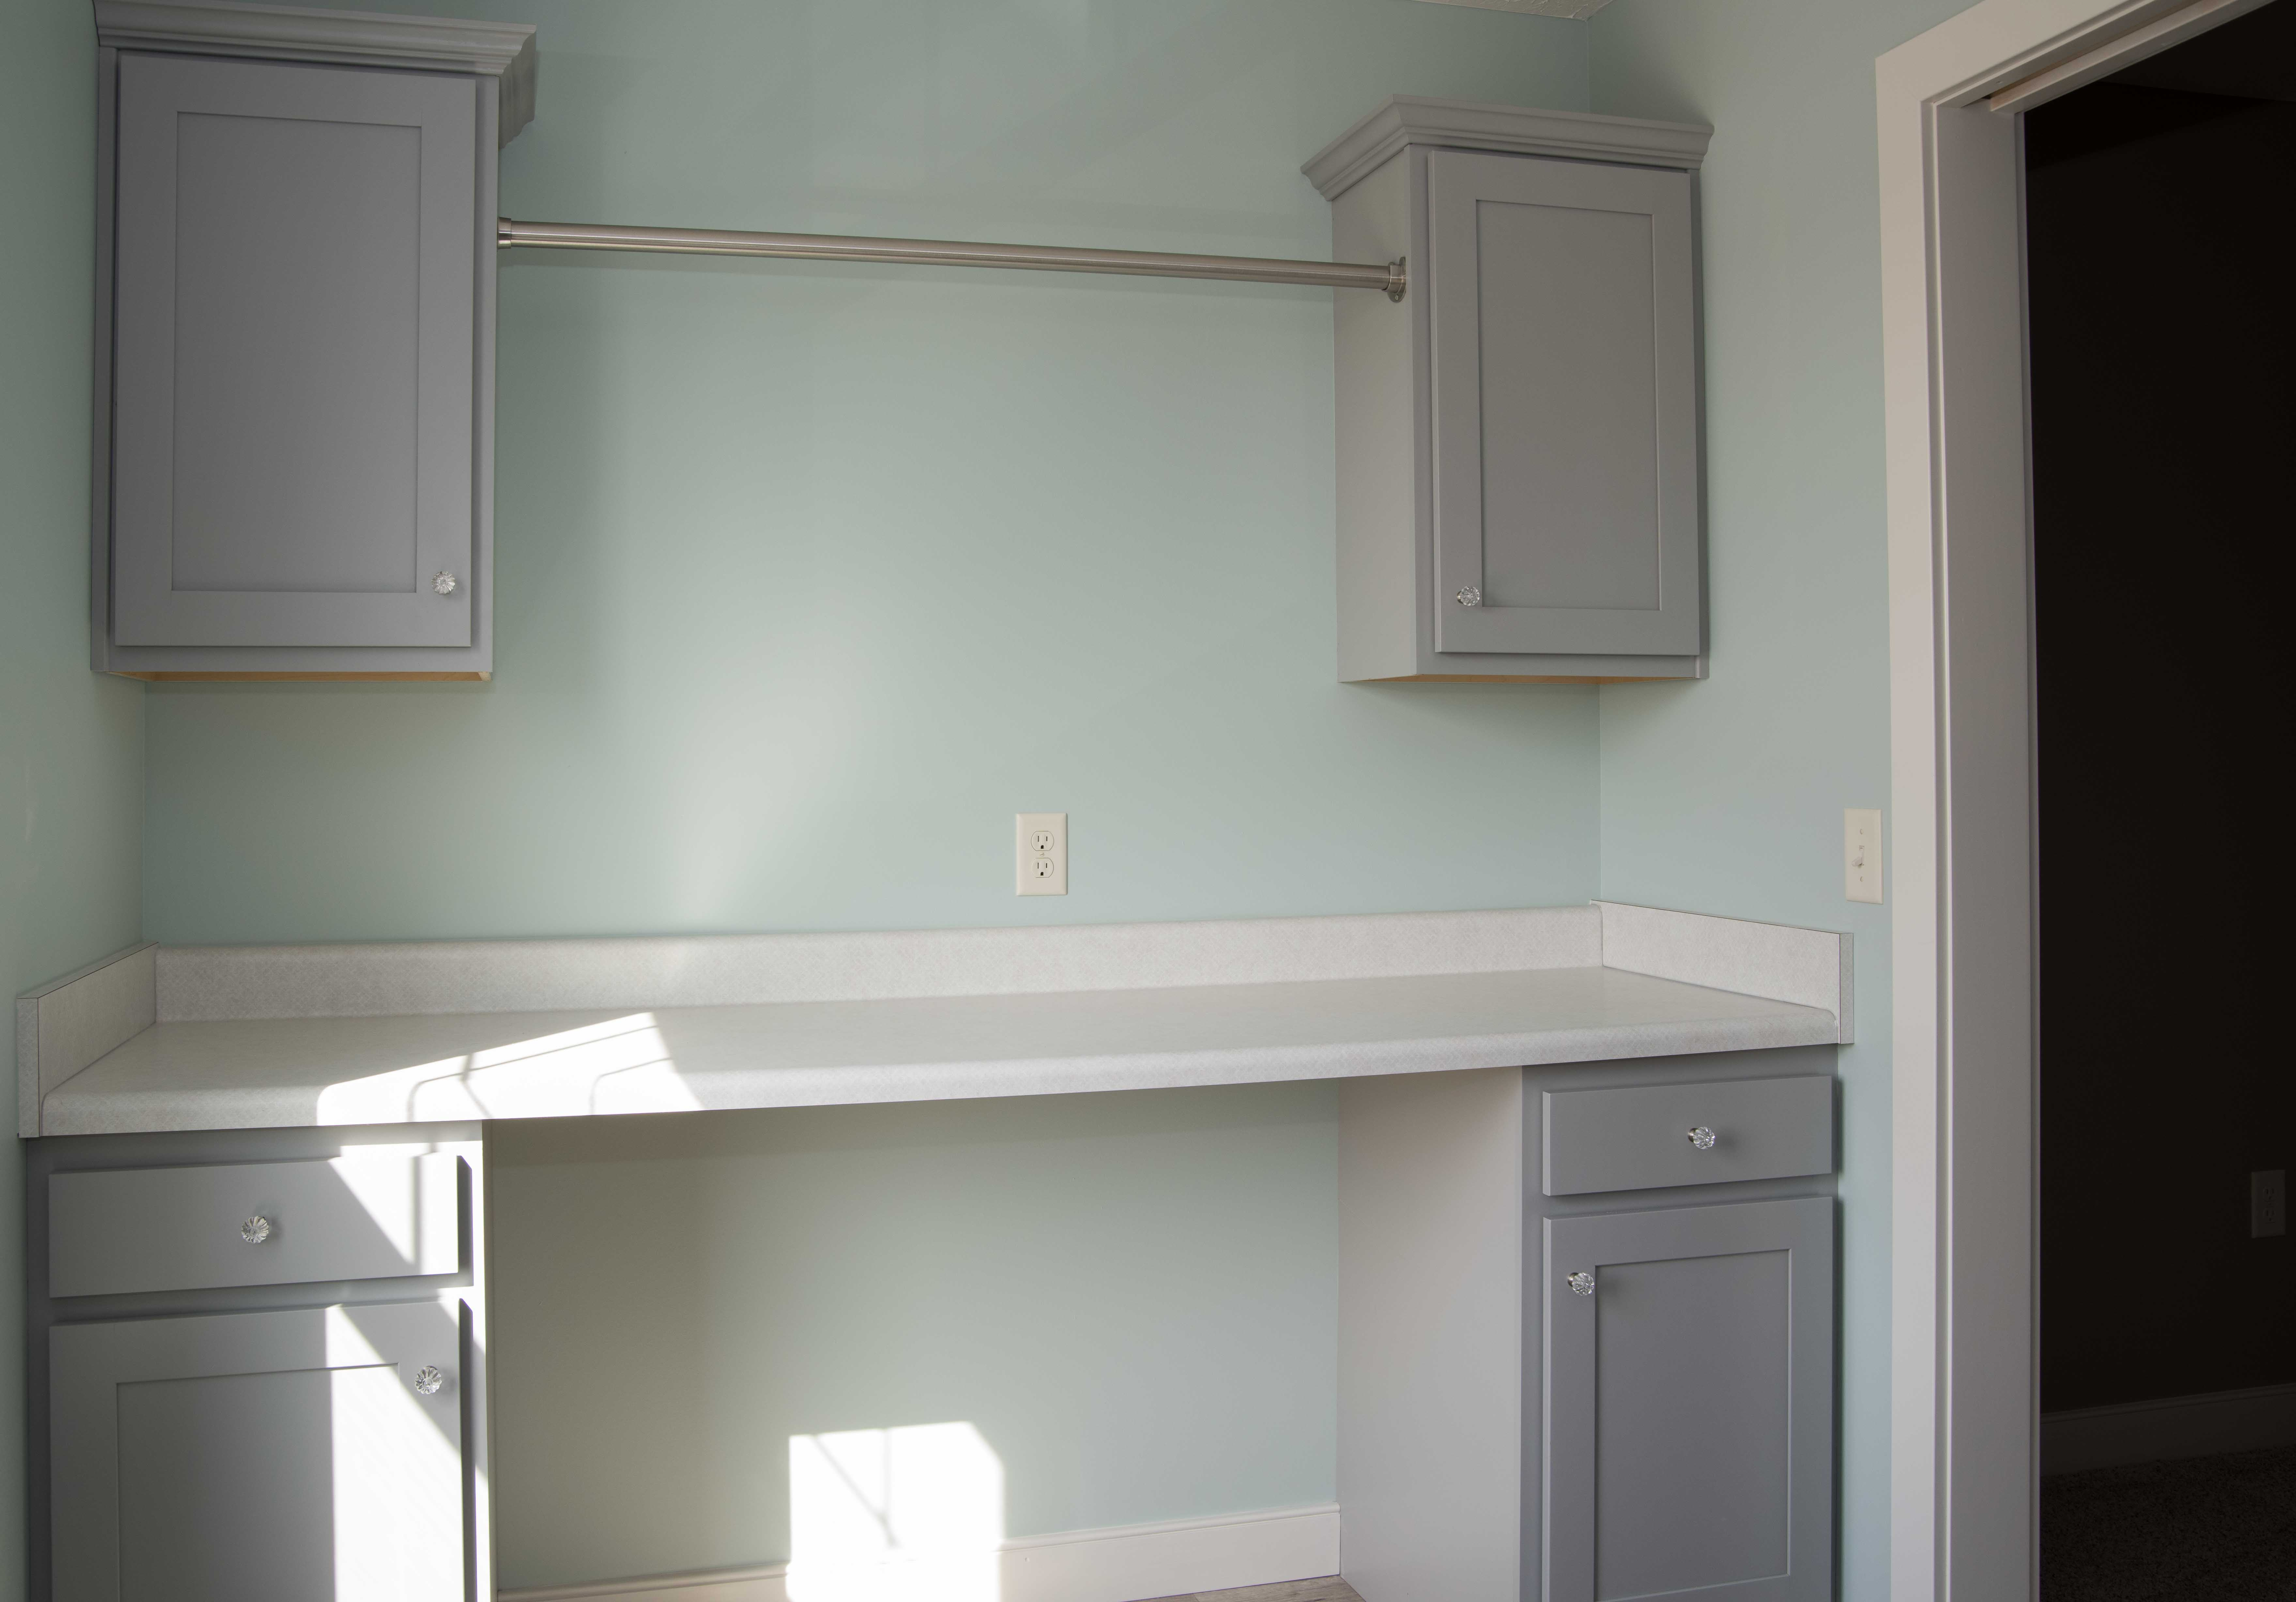 Hanging rod between upper cabinets and wall-to-wall folding area